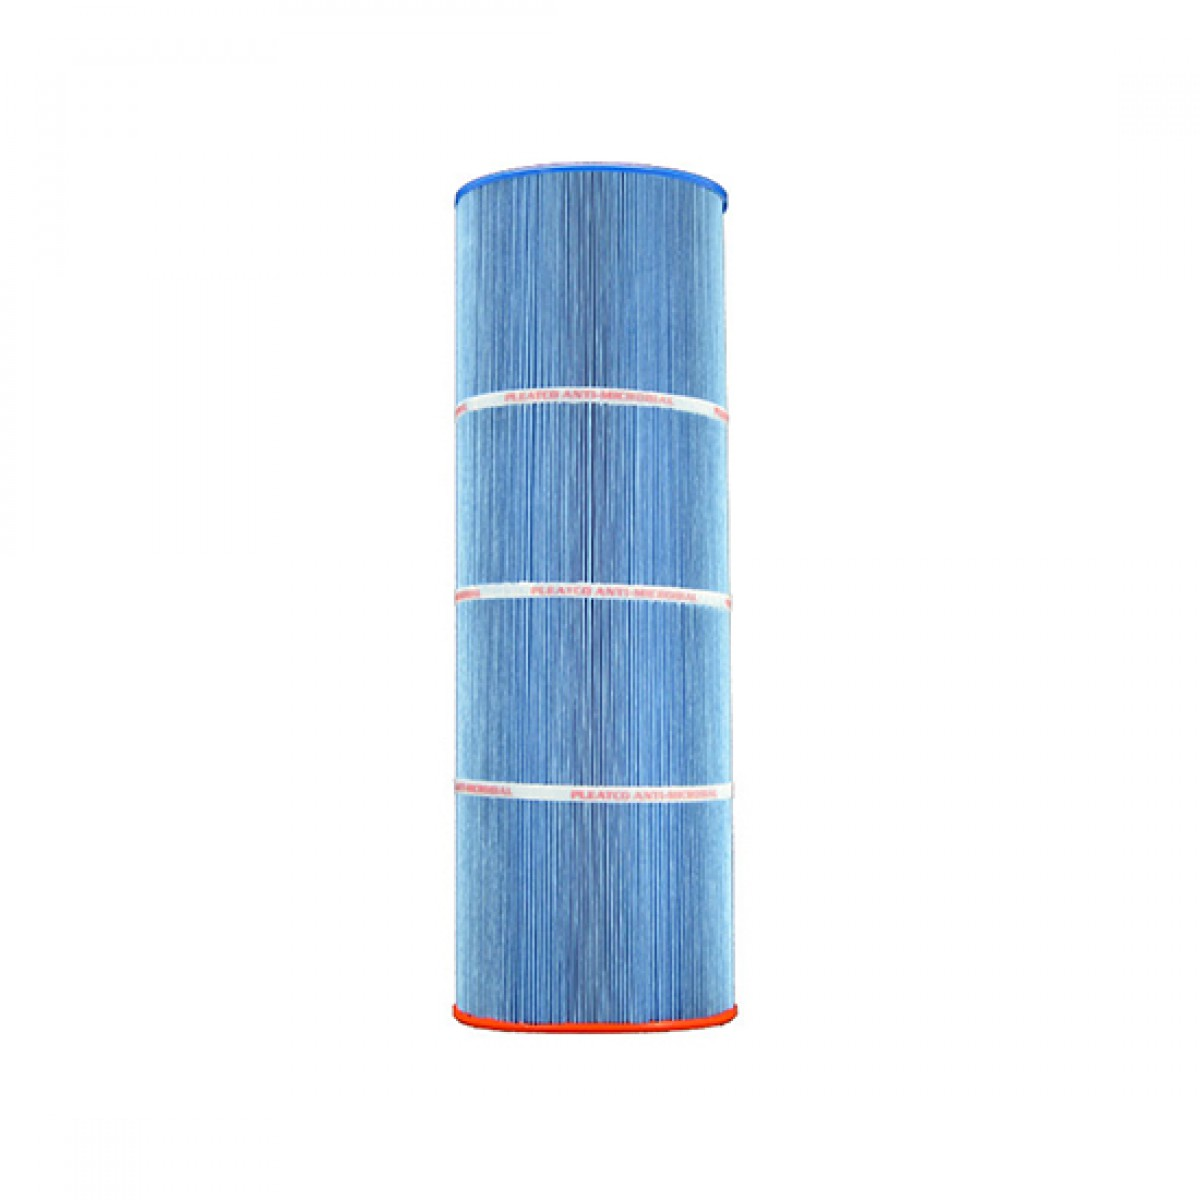 Jacuzzi Triclops Pool Filter Cartridge Pleatco Pjc110 M4 Replacement For 42 3799 23 R